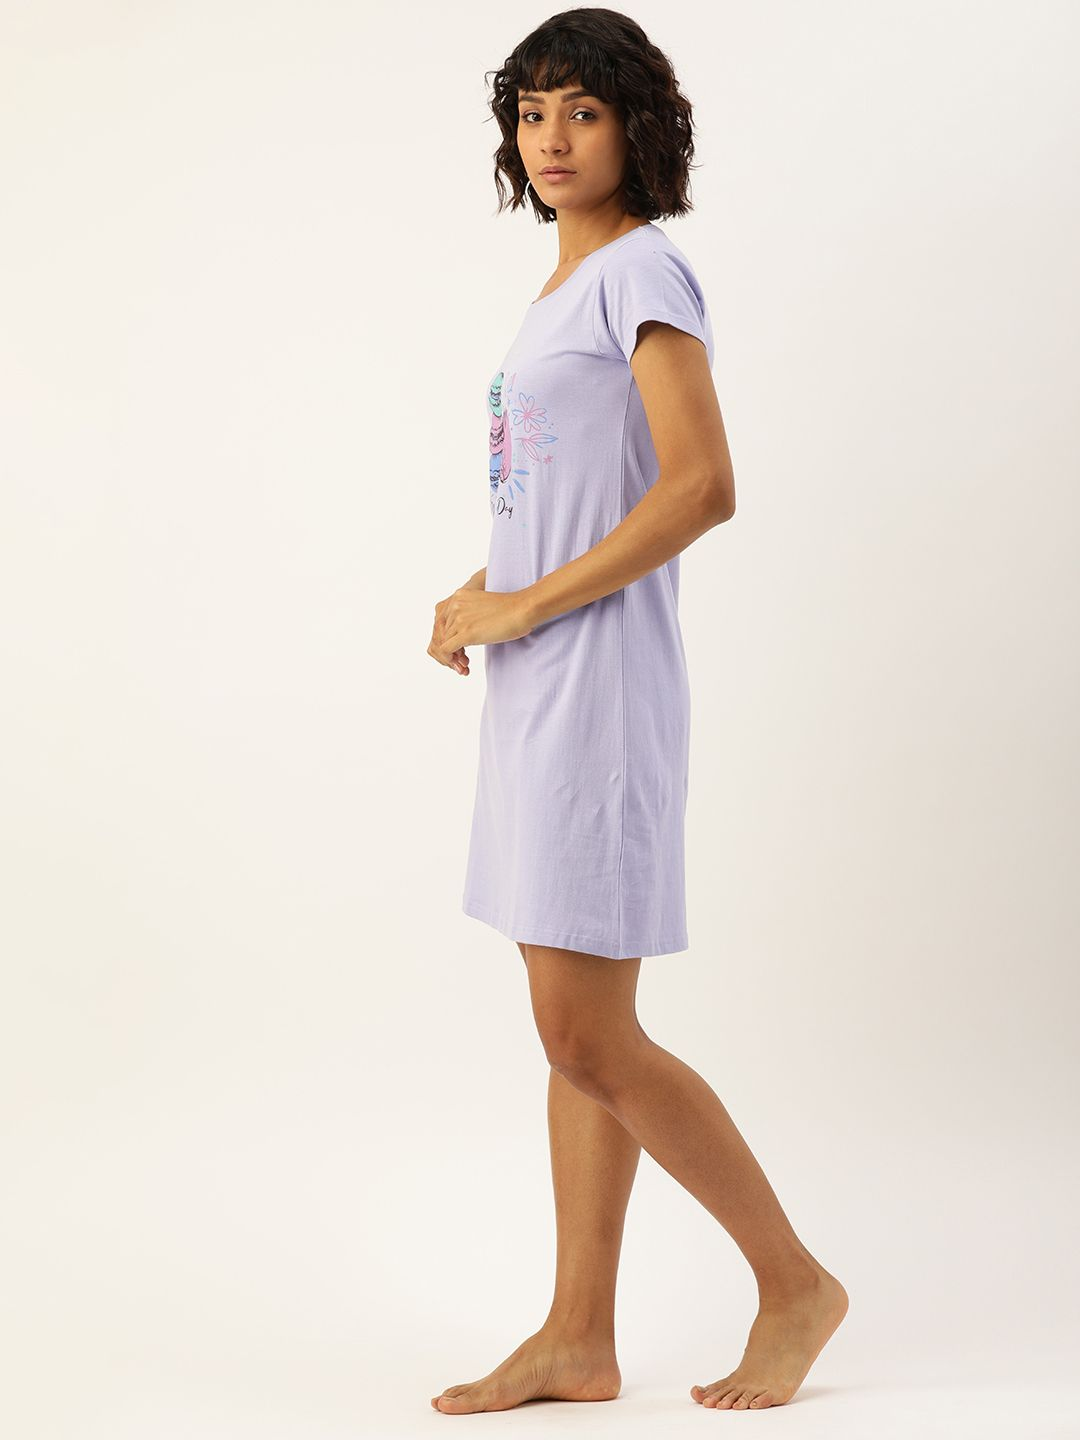 Slumber Jill Purple Heather Macaron Sleep Shirt